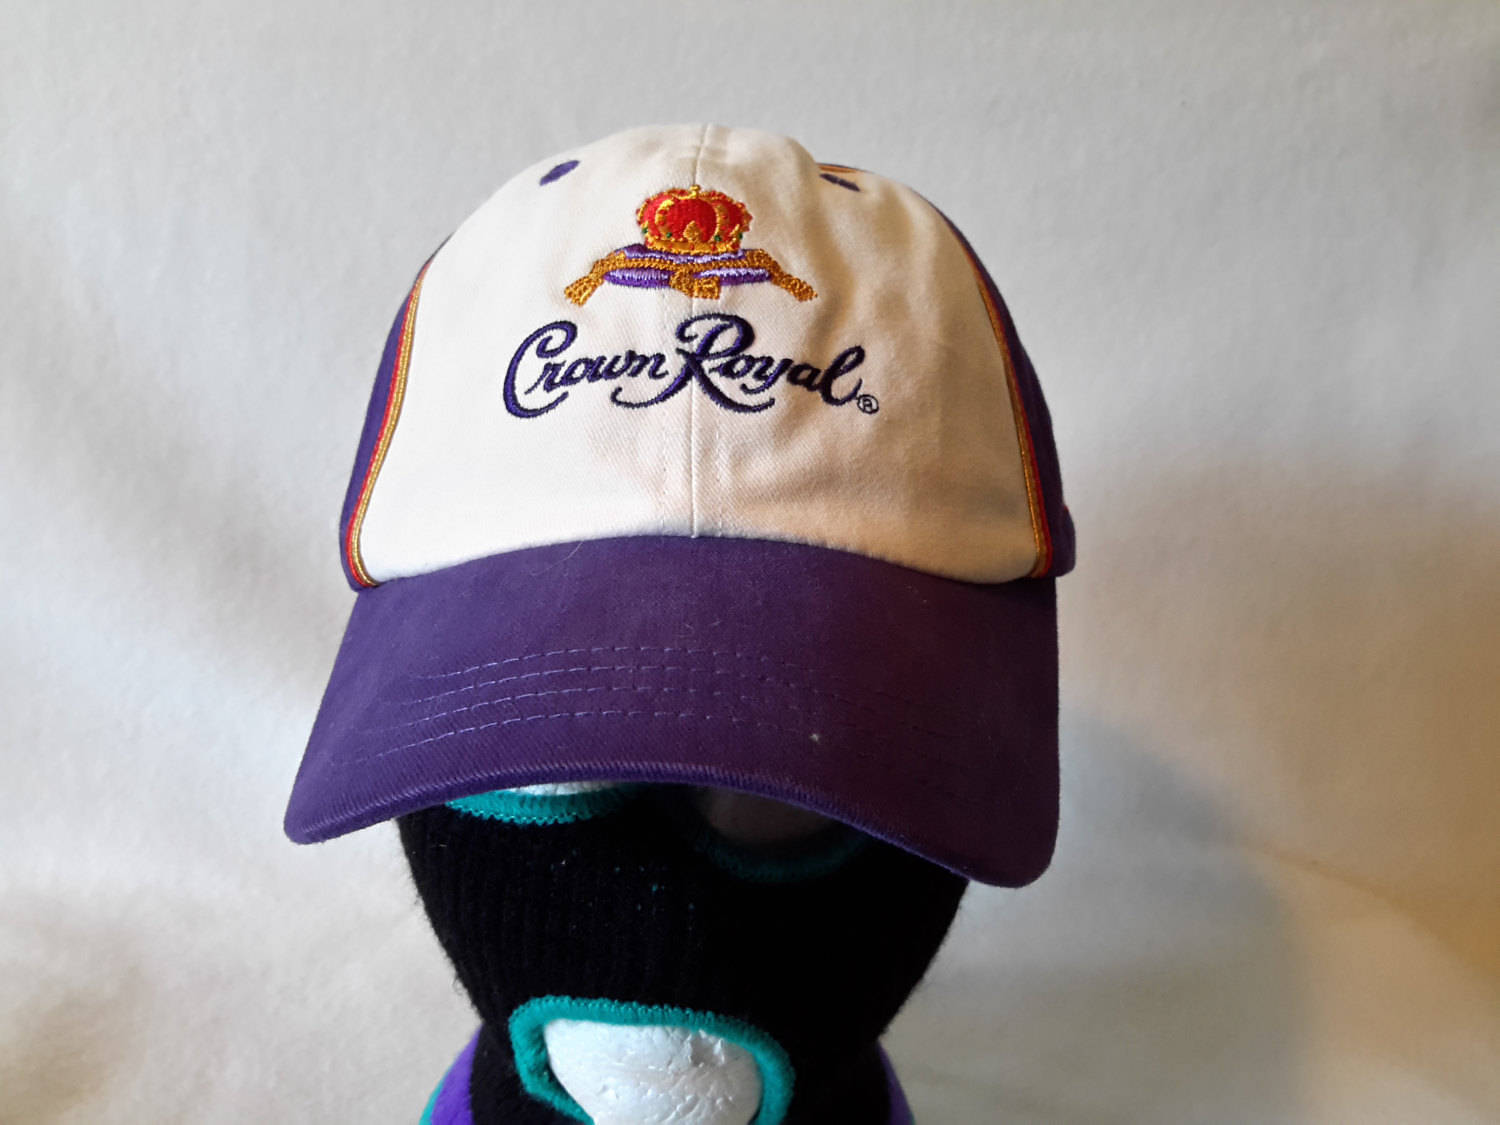 Vtg Crown Royal RacingDad hat cap beer Retro Alcohol liqour bourbon Cognac Henny